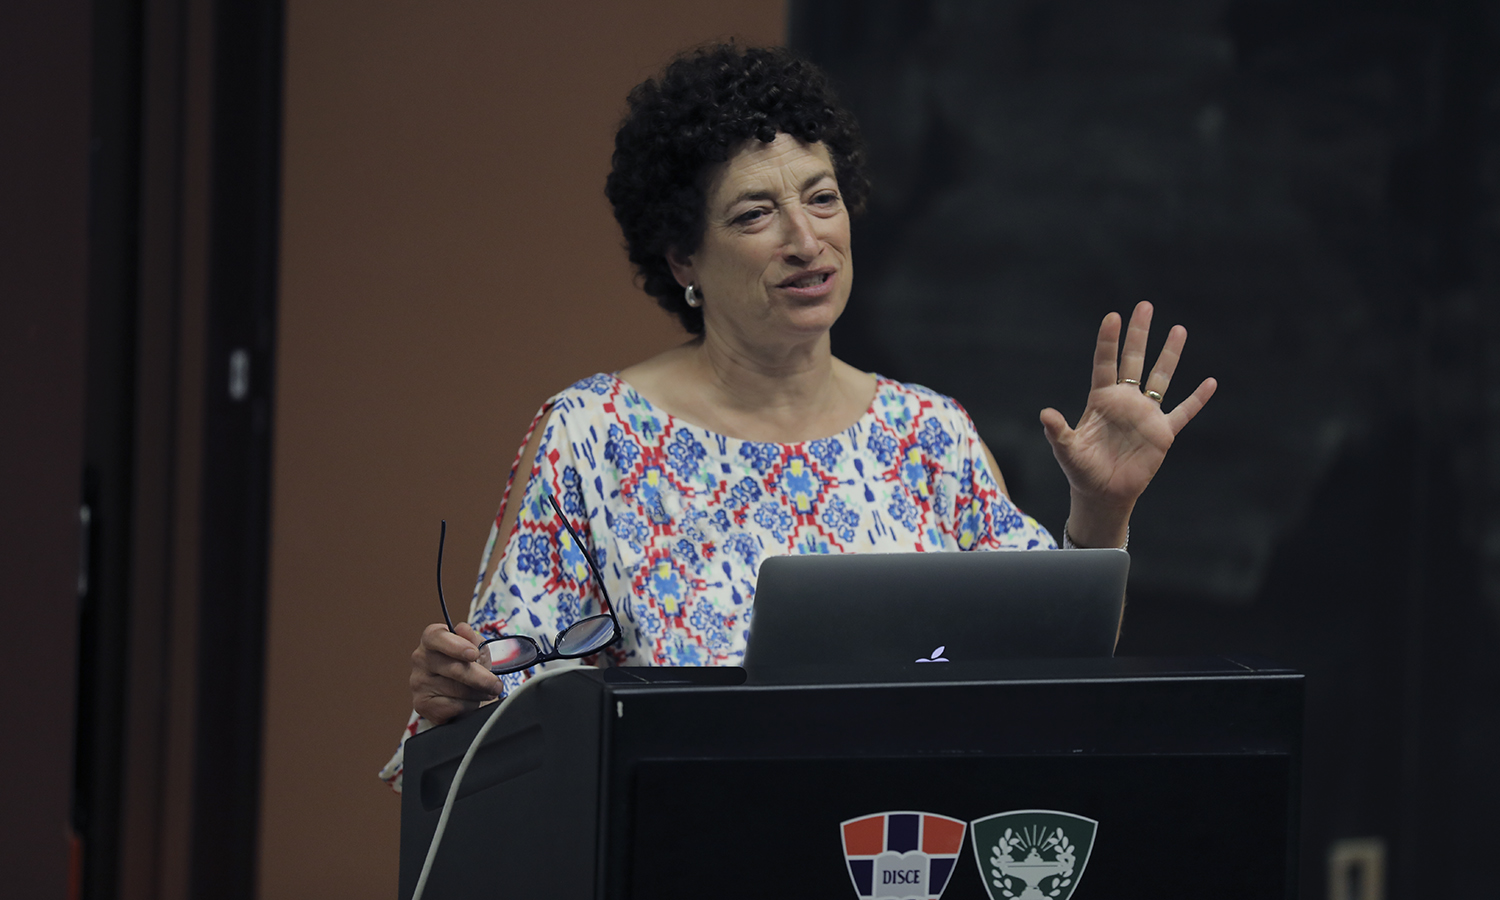 Professor of the History of Science at Harvard University Naomi Oreskes delivers her talk titled âClimate Change: What Now? in the Geneva Room on Tuesday.